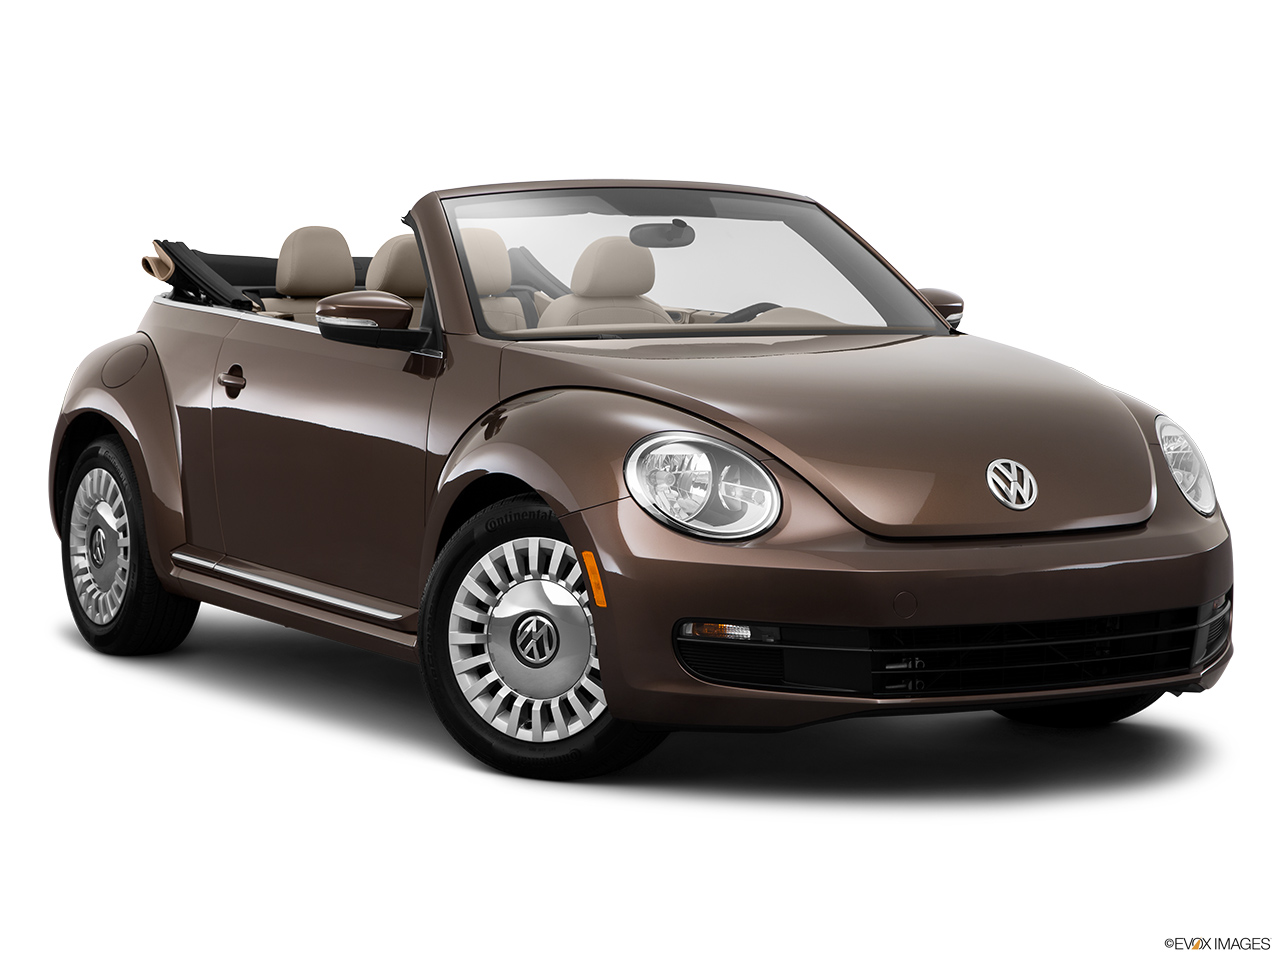 2015 Volkswagen Beetle Convertible 2 Door Manual 2.0T R-Line - Front  passenger 3